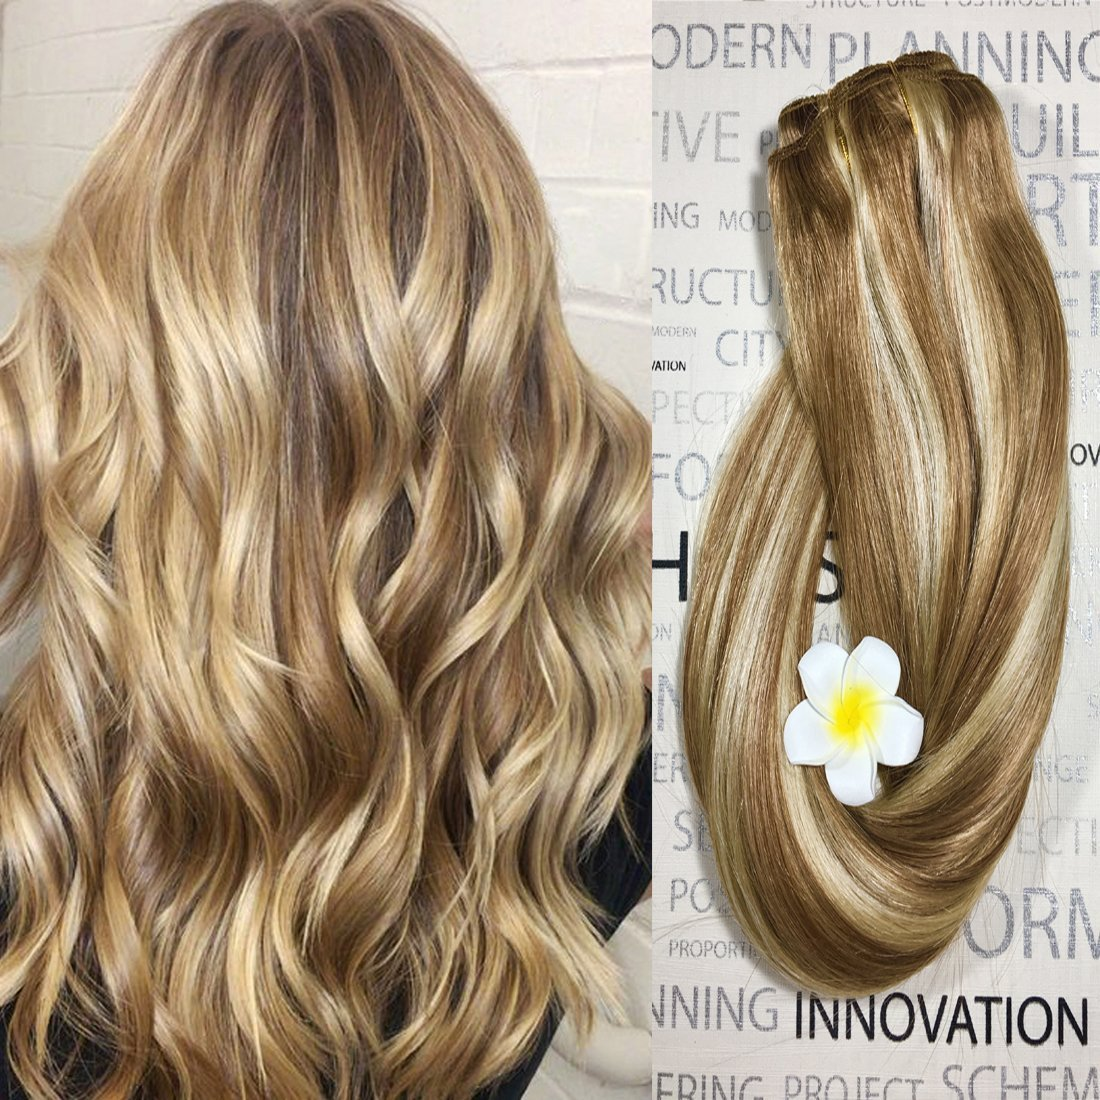 Amazon.com : Human Hair Extensions Clip in Dirty Blonde ...